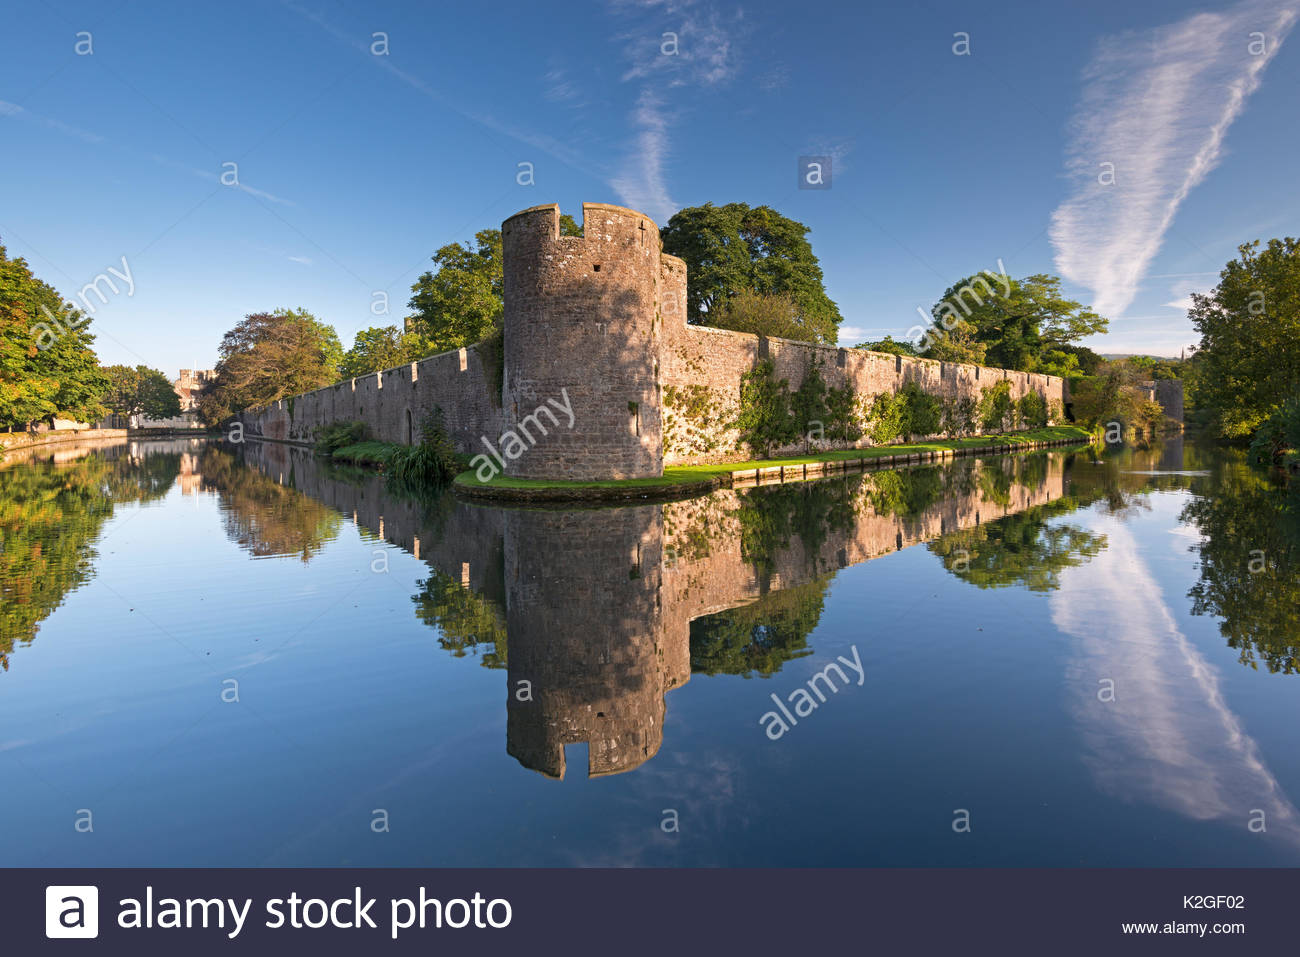 Bishop's Palace and moat in the city of Wells, Somerset, England, UK. September 2013. Stock Photo